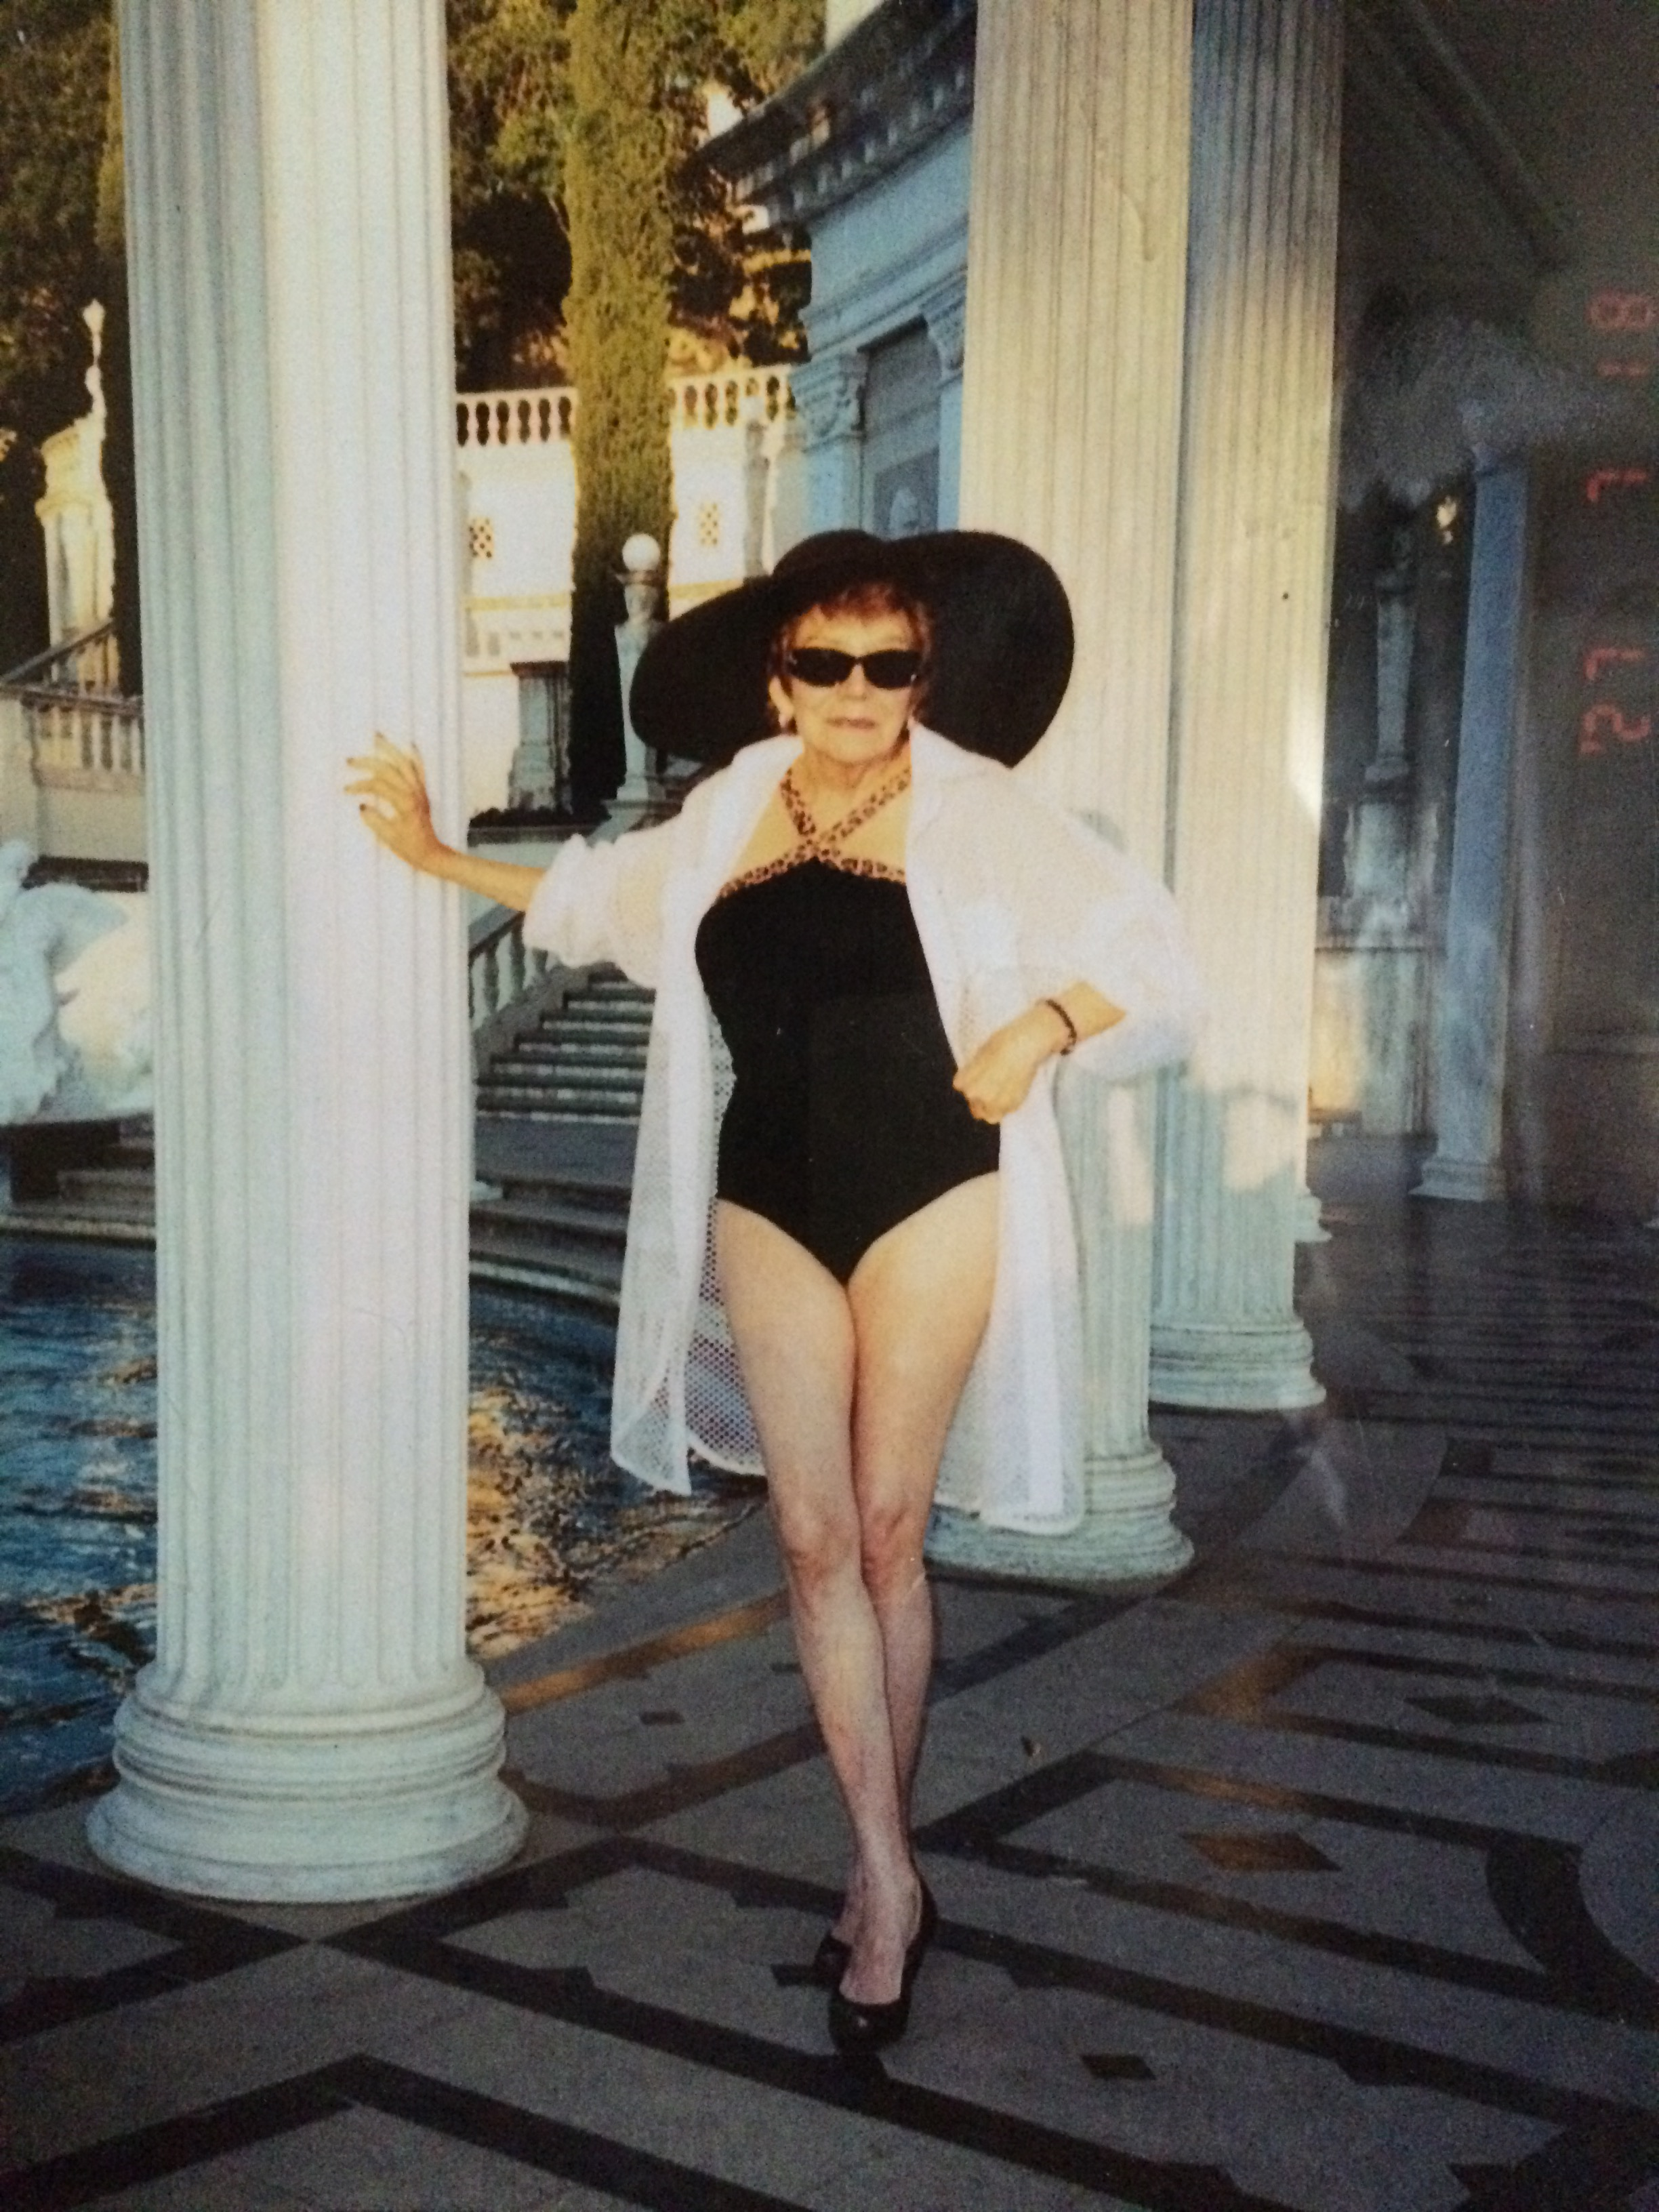 Sally at Hearst Castle at 80!